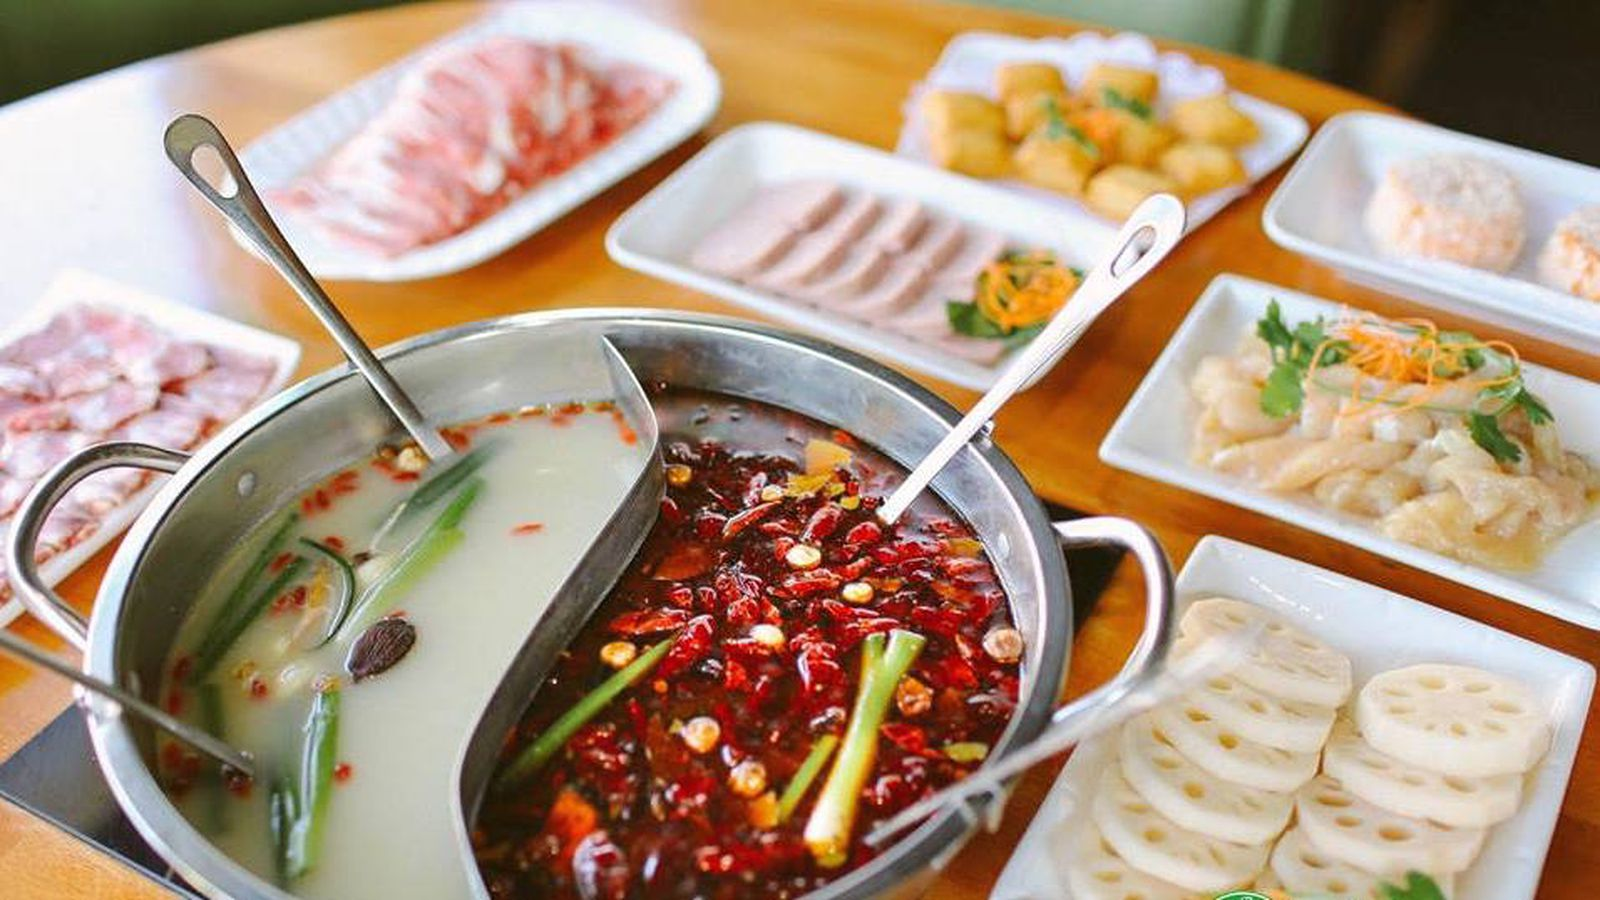 Spicy Food In Houston: 10 Places To Light Your Mouth On Fire - Eater Houston